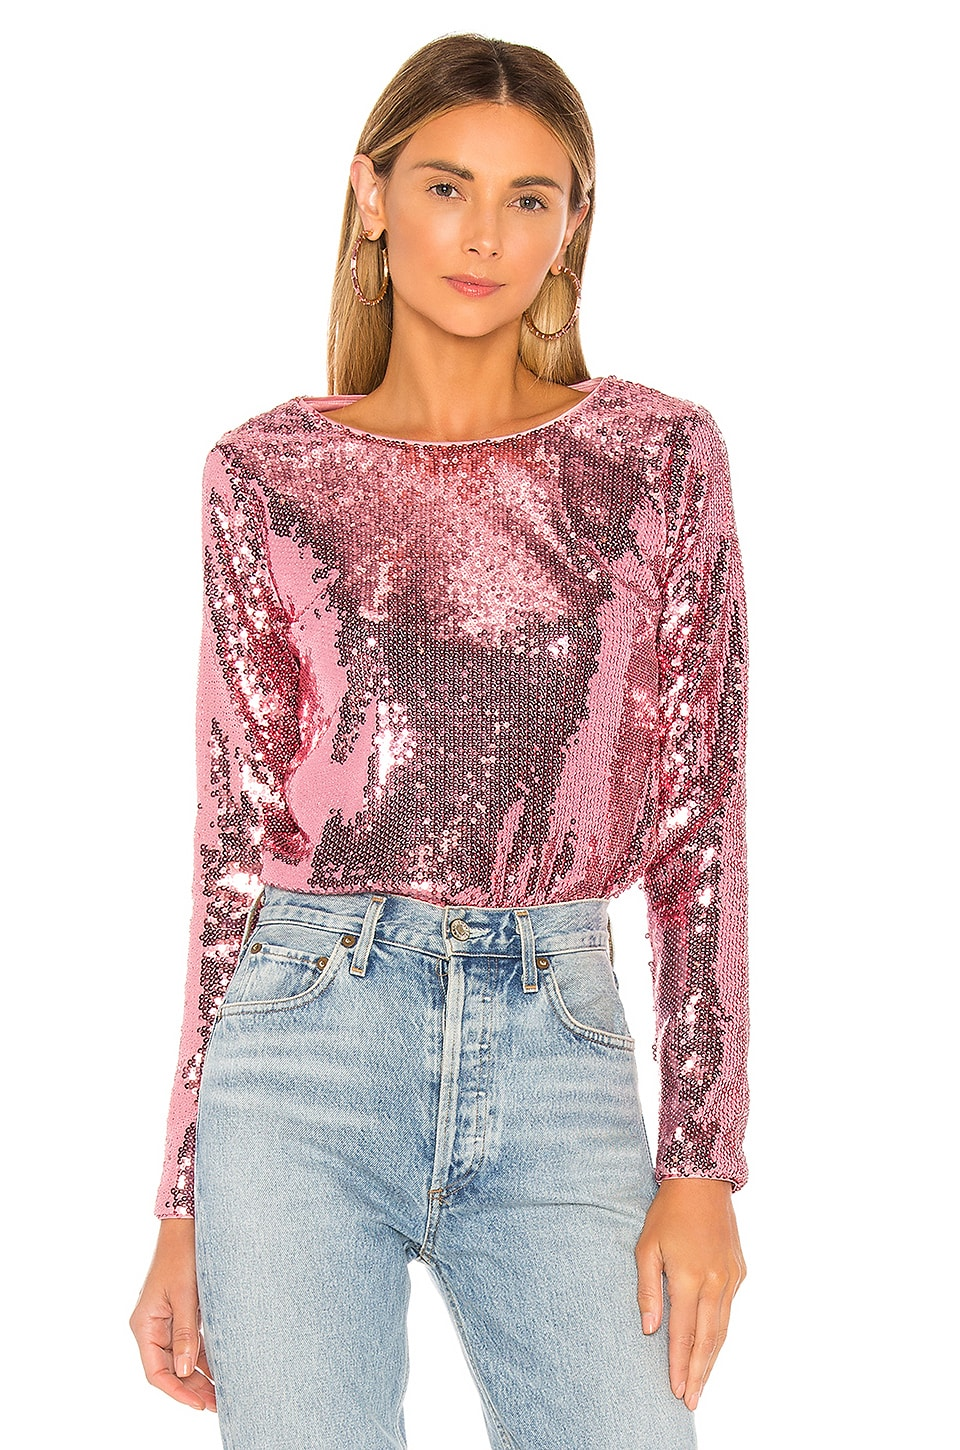 MAJORELLE Christiana Top in Disco Pink